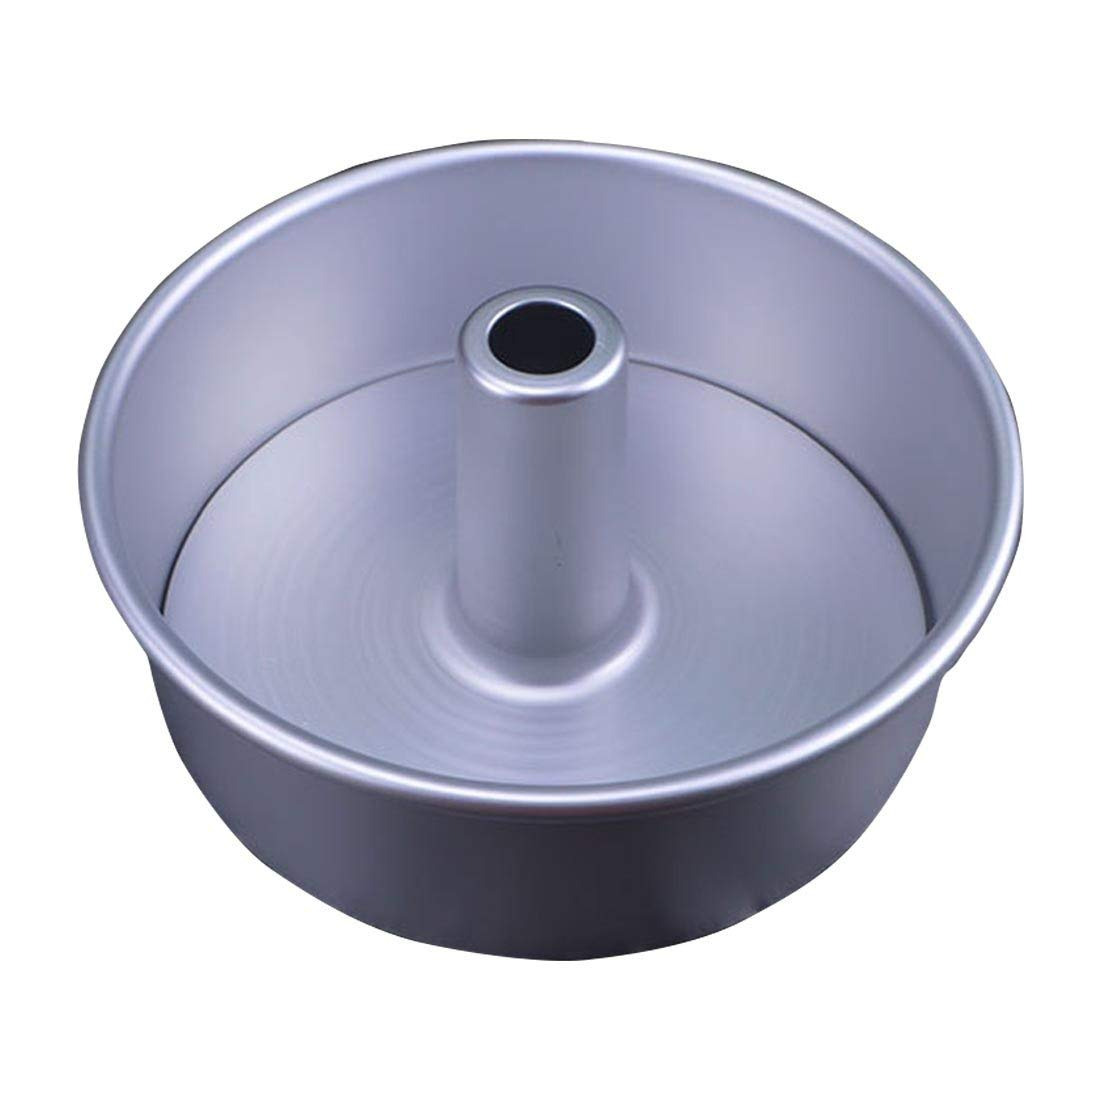 Round Springform Cake Pan Set,Cake Pan,Cheesecake Pan,Nonstick Bakeware,Baking Pans